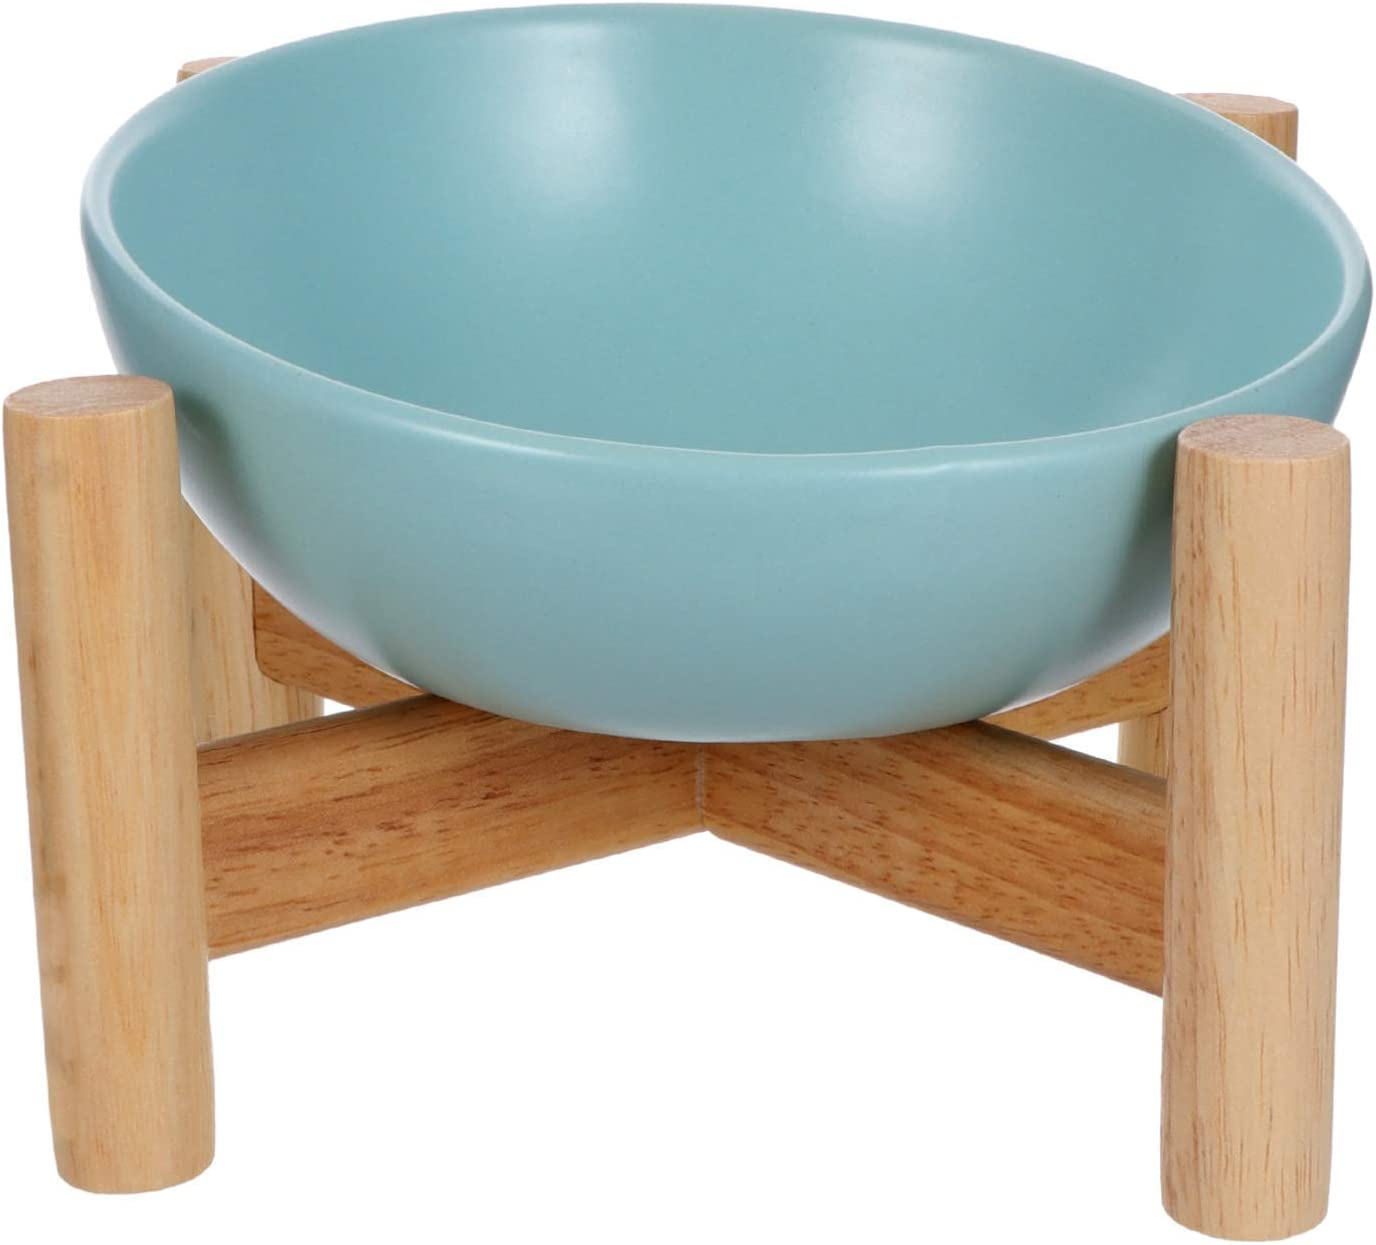 Raised Bowls for Pets Over item handling Ceramic Cats Dealing full price reduction with Wood St